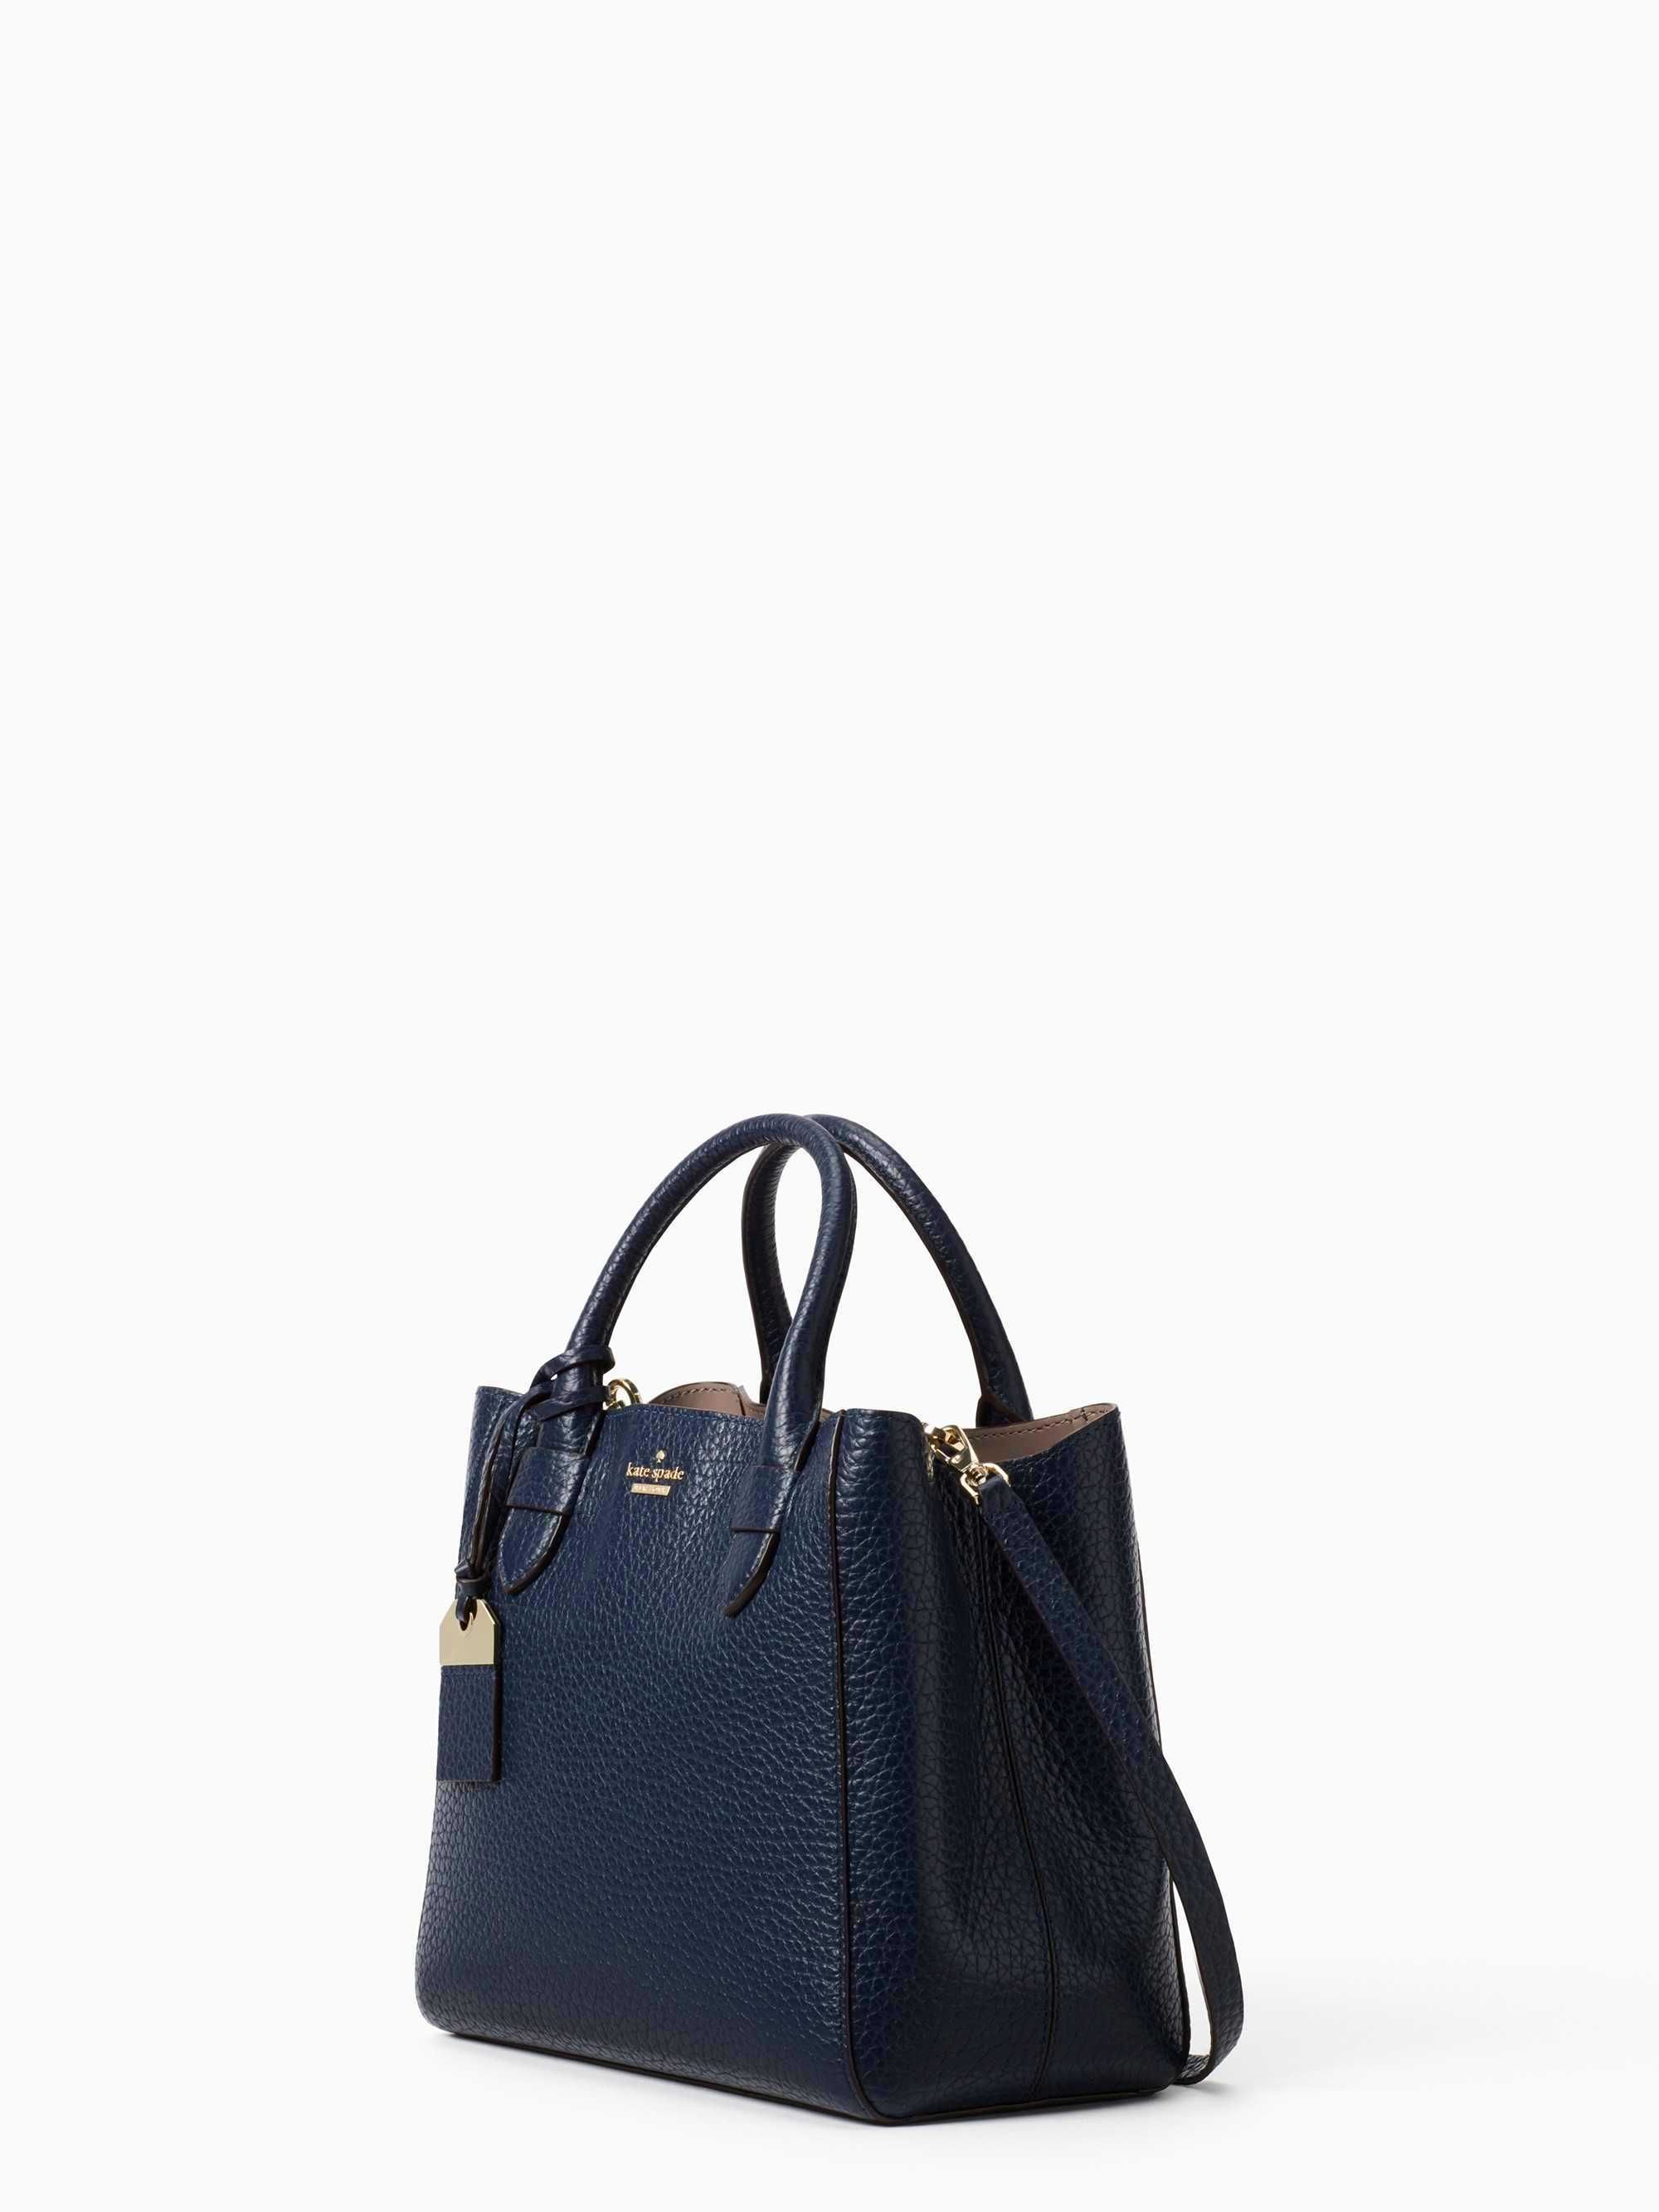 Kate Spade Purse Macys Outlet Online Legit Your Right Choice Spadehandbags Zvrmyysqyp